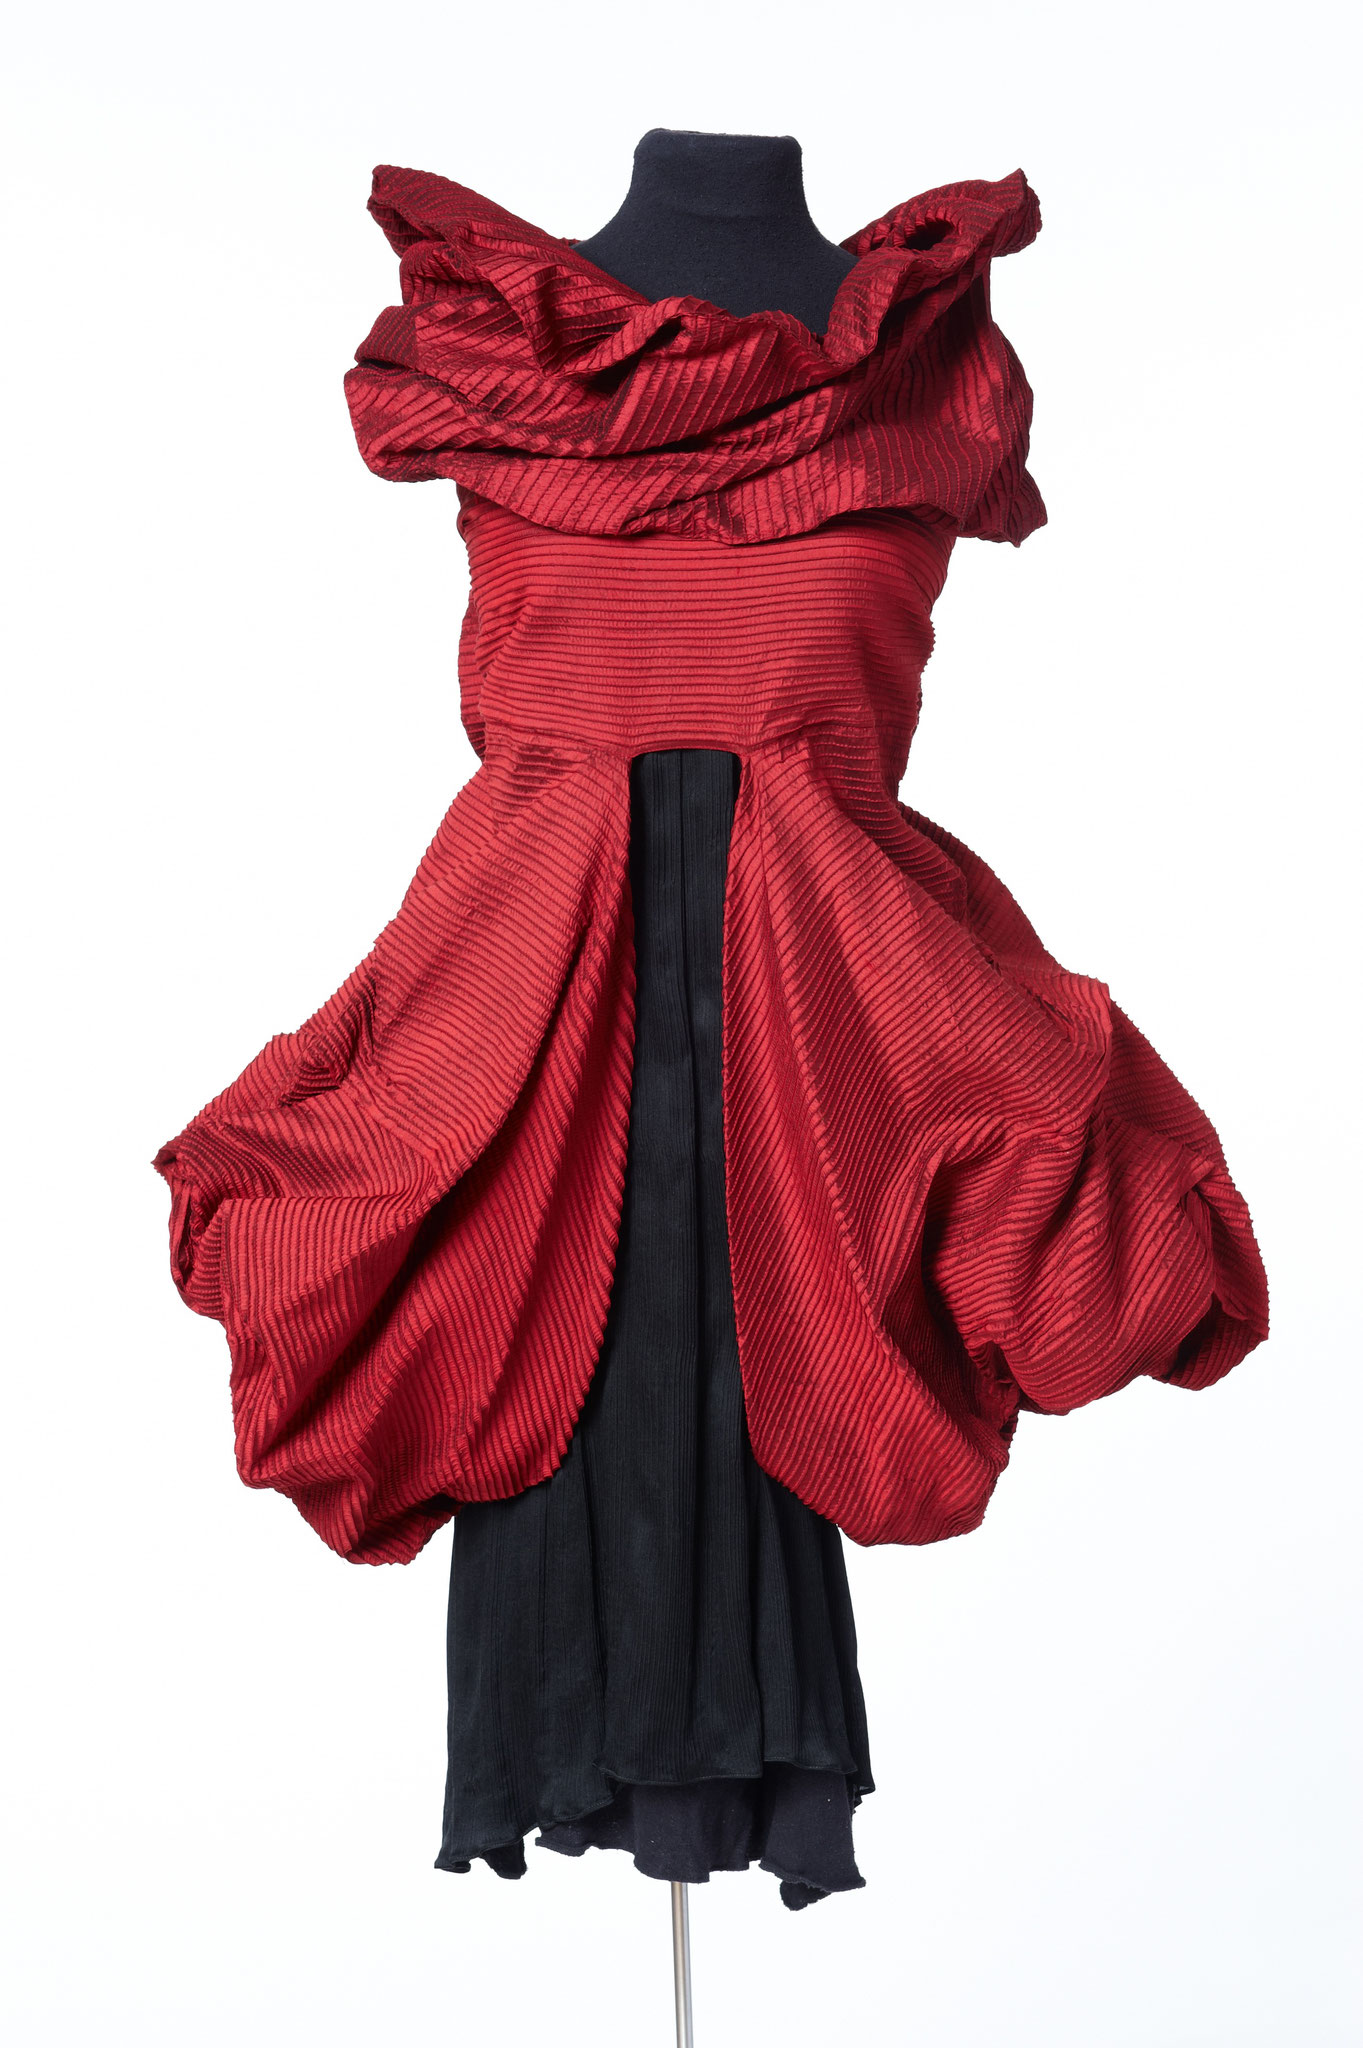 Mogler and scarf: Bochum Design Award 2010. material: 100% silk